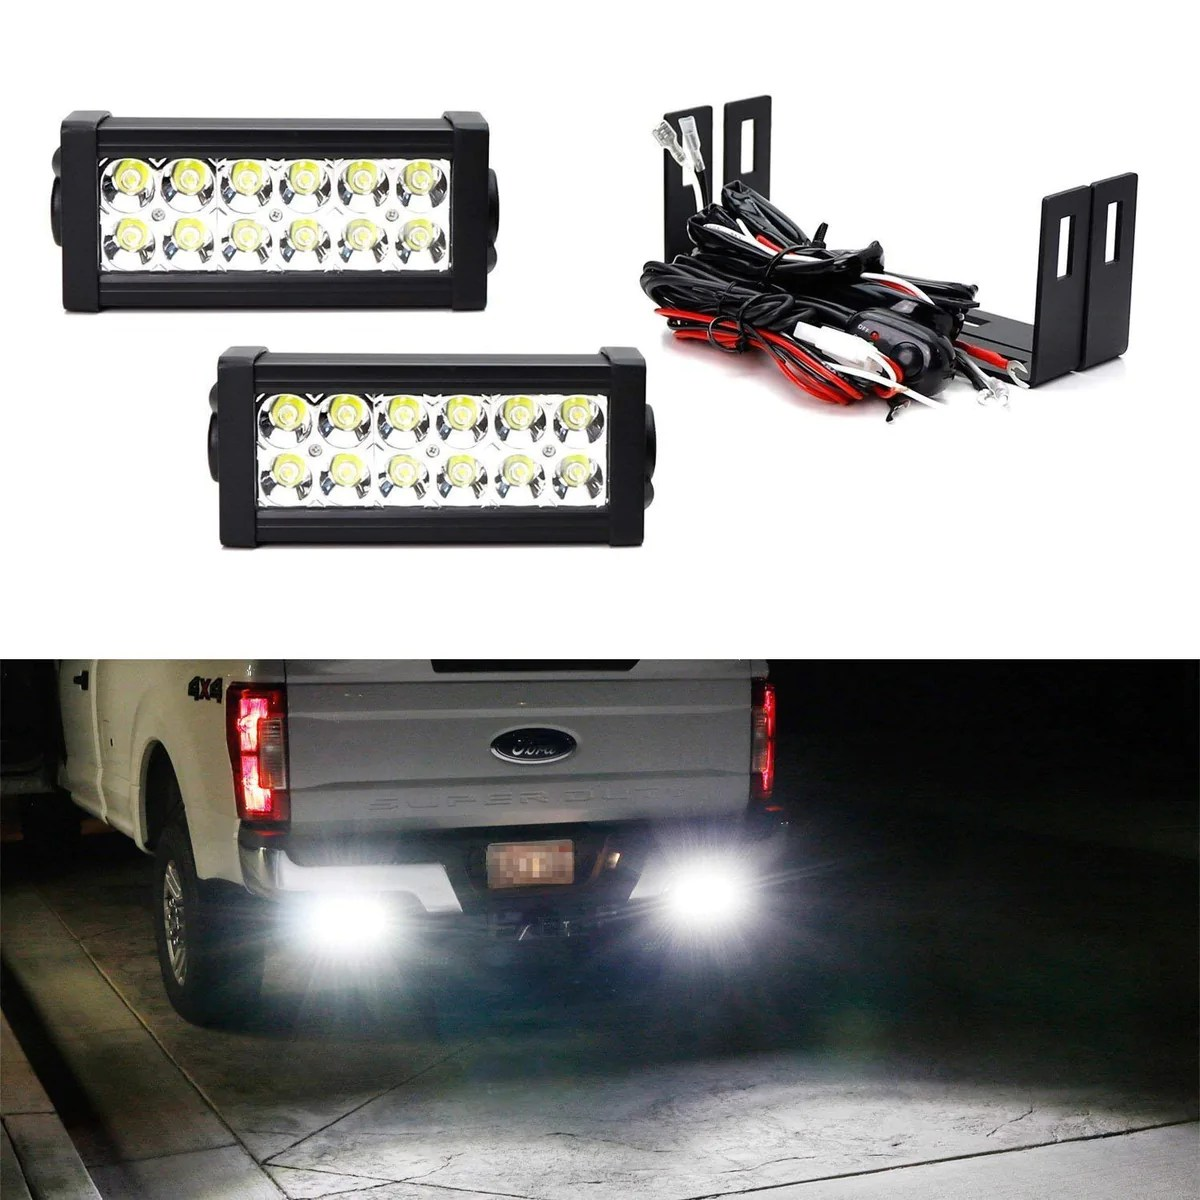 hight resolution of rear bumper mount searchlight reverse led light bar kit for 2011 up ford f250 f350 f450 super duty 2 36w high power led lightbars bumper frame mounting